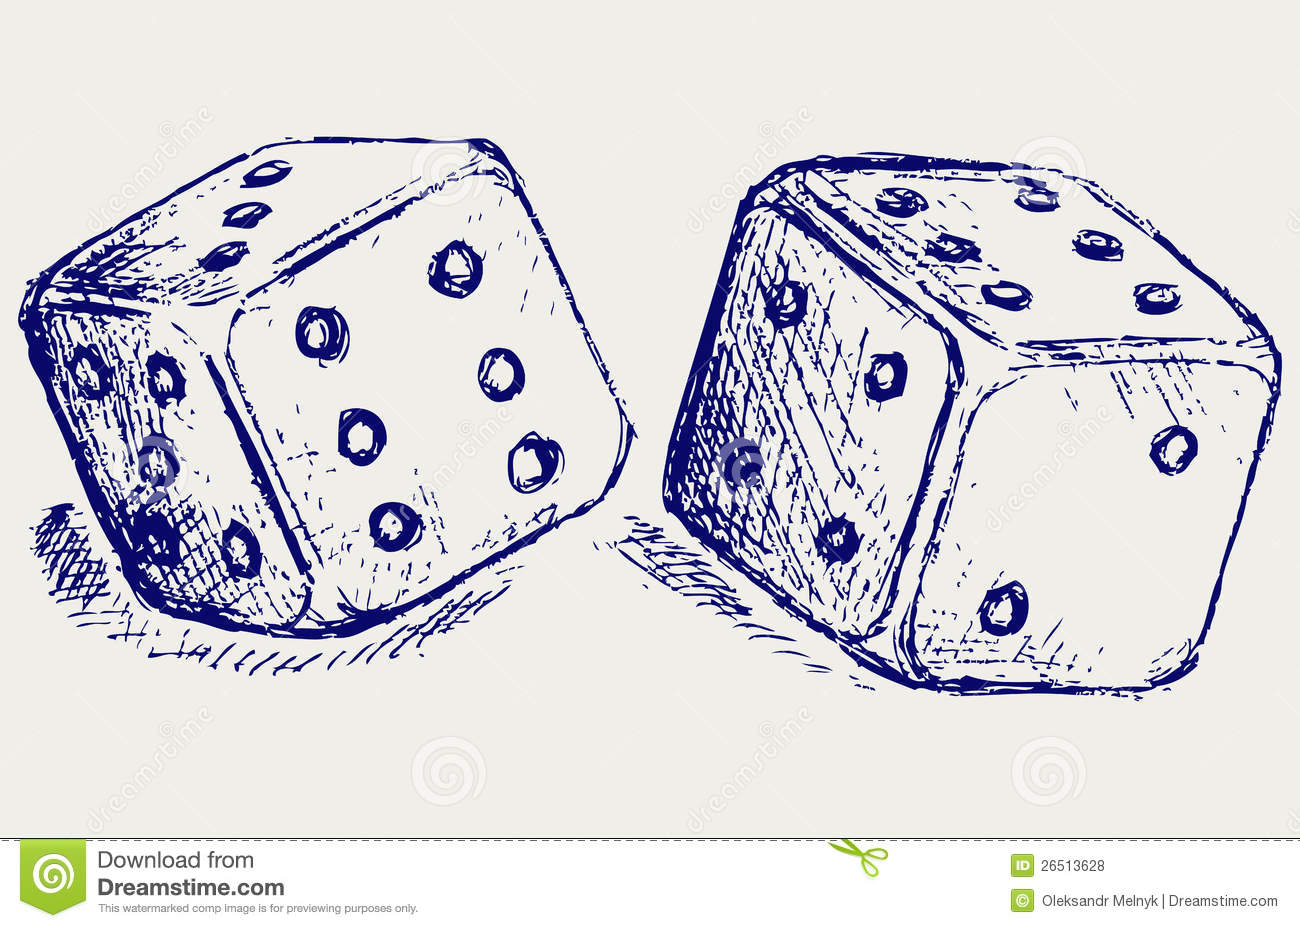 Sketch two dices royalty free stock photos image 26513628 for Sketch online free